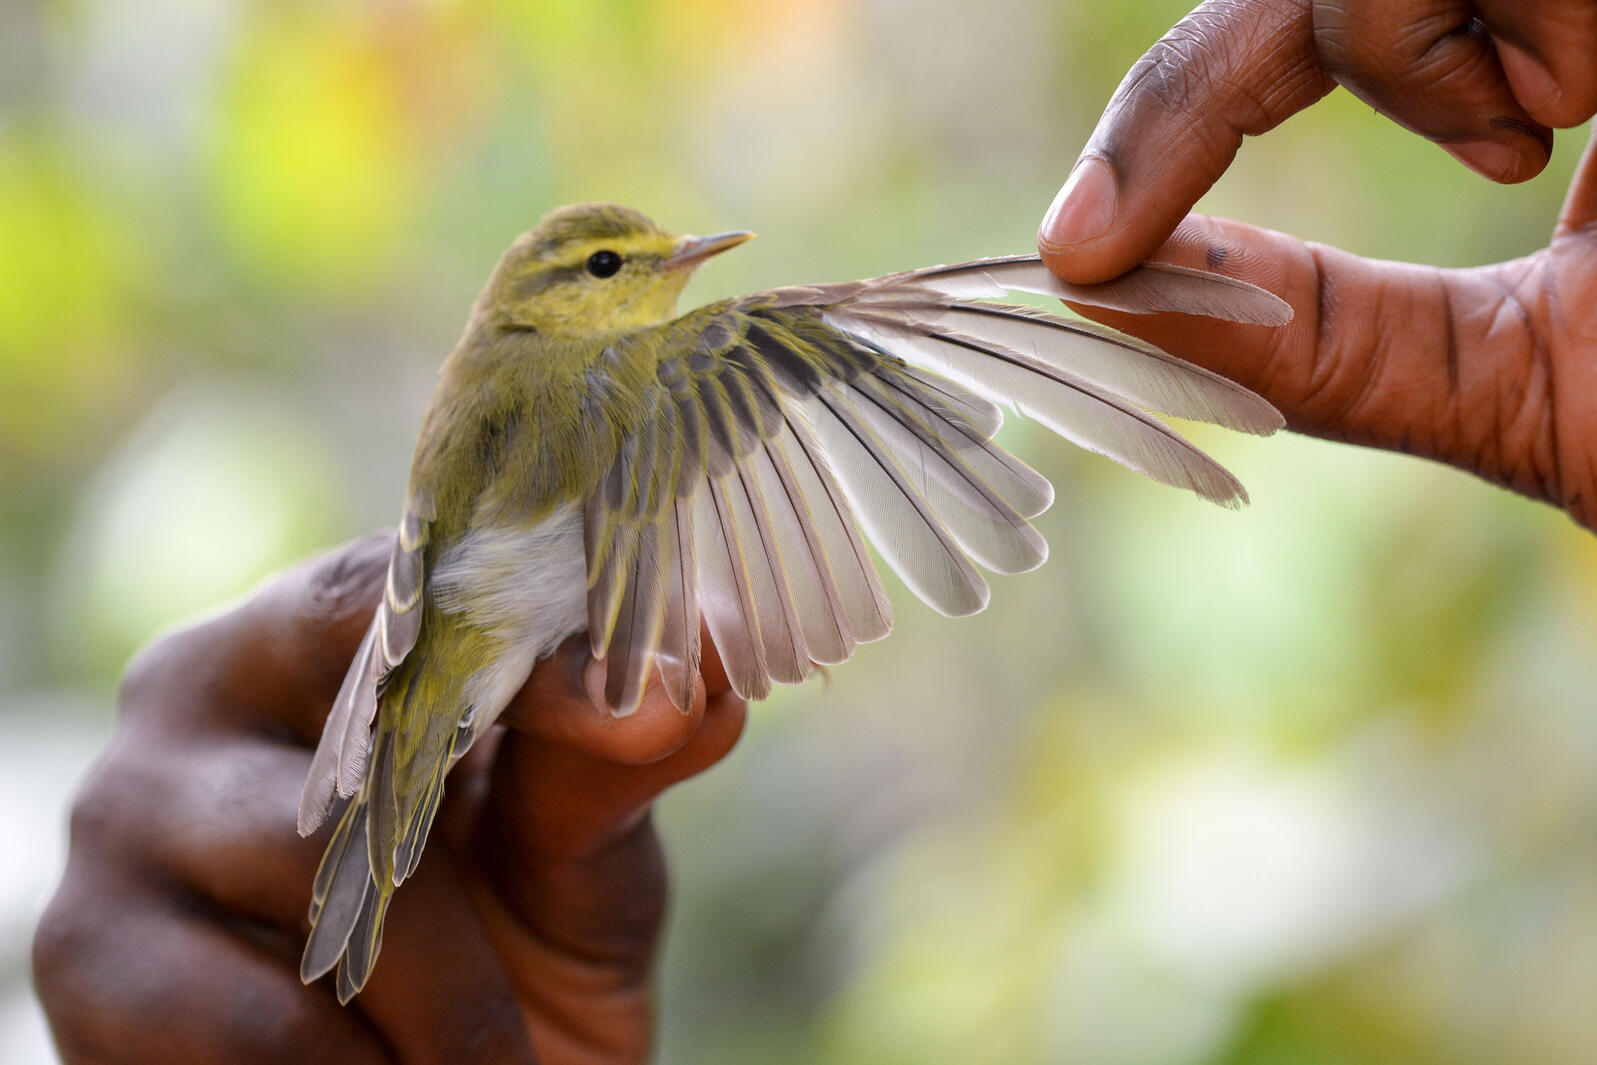 A molting Wood Warbler is posed with its wing outstretched during bird banding on a cocoa farm in Cameroon. Crinan Jarrett